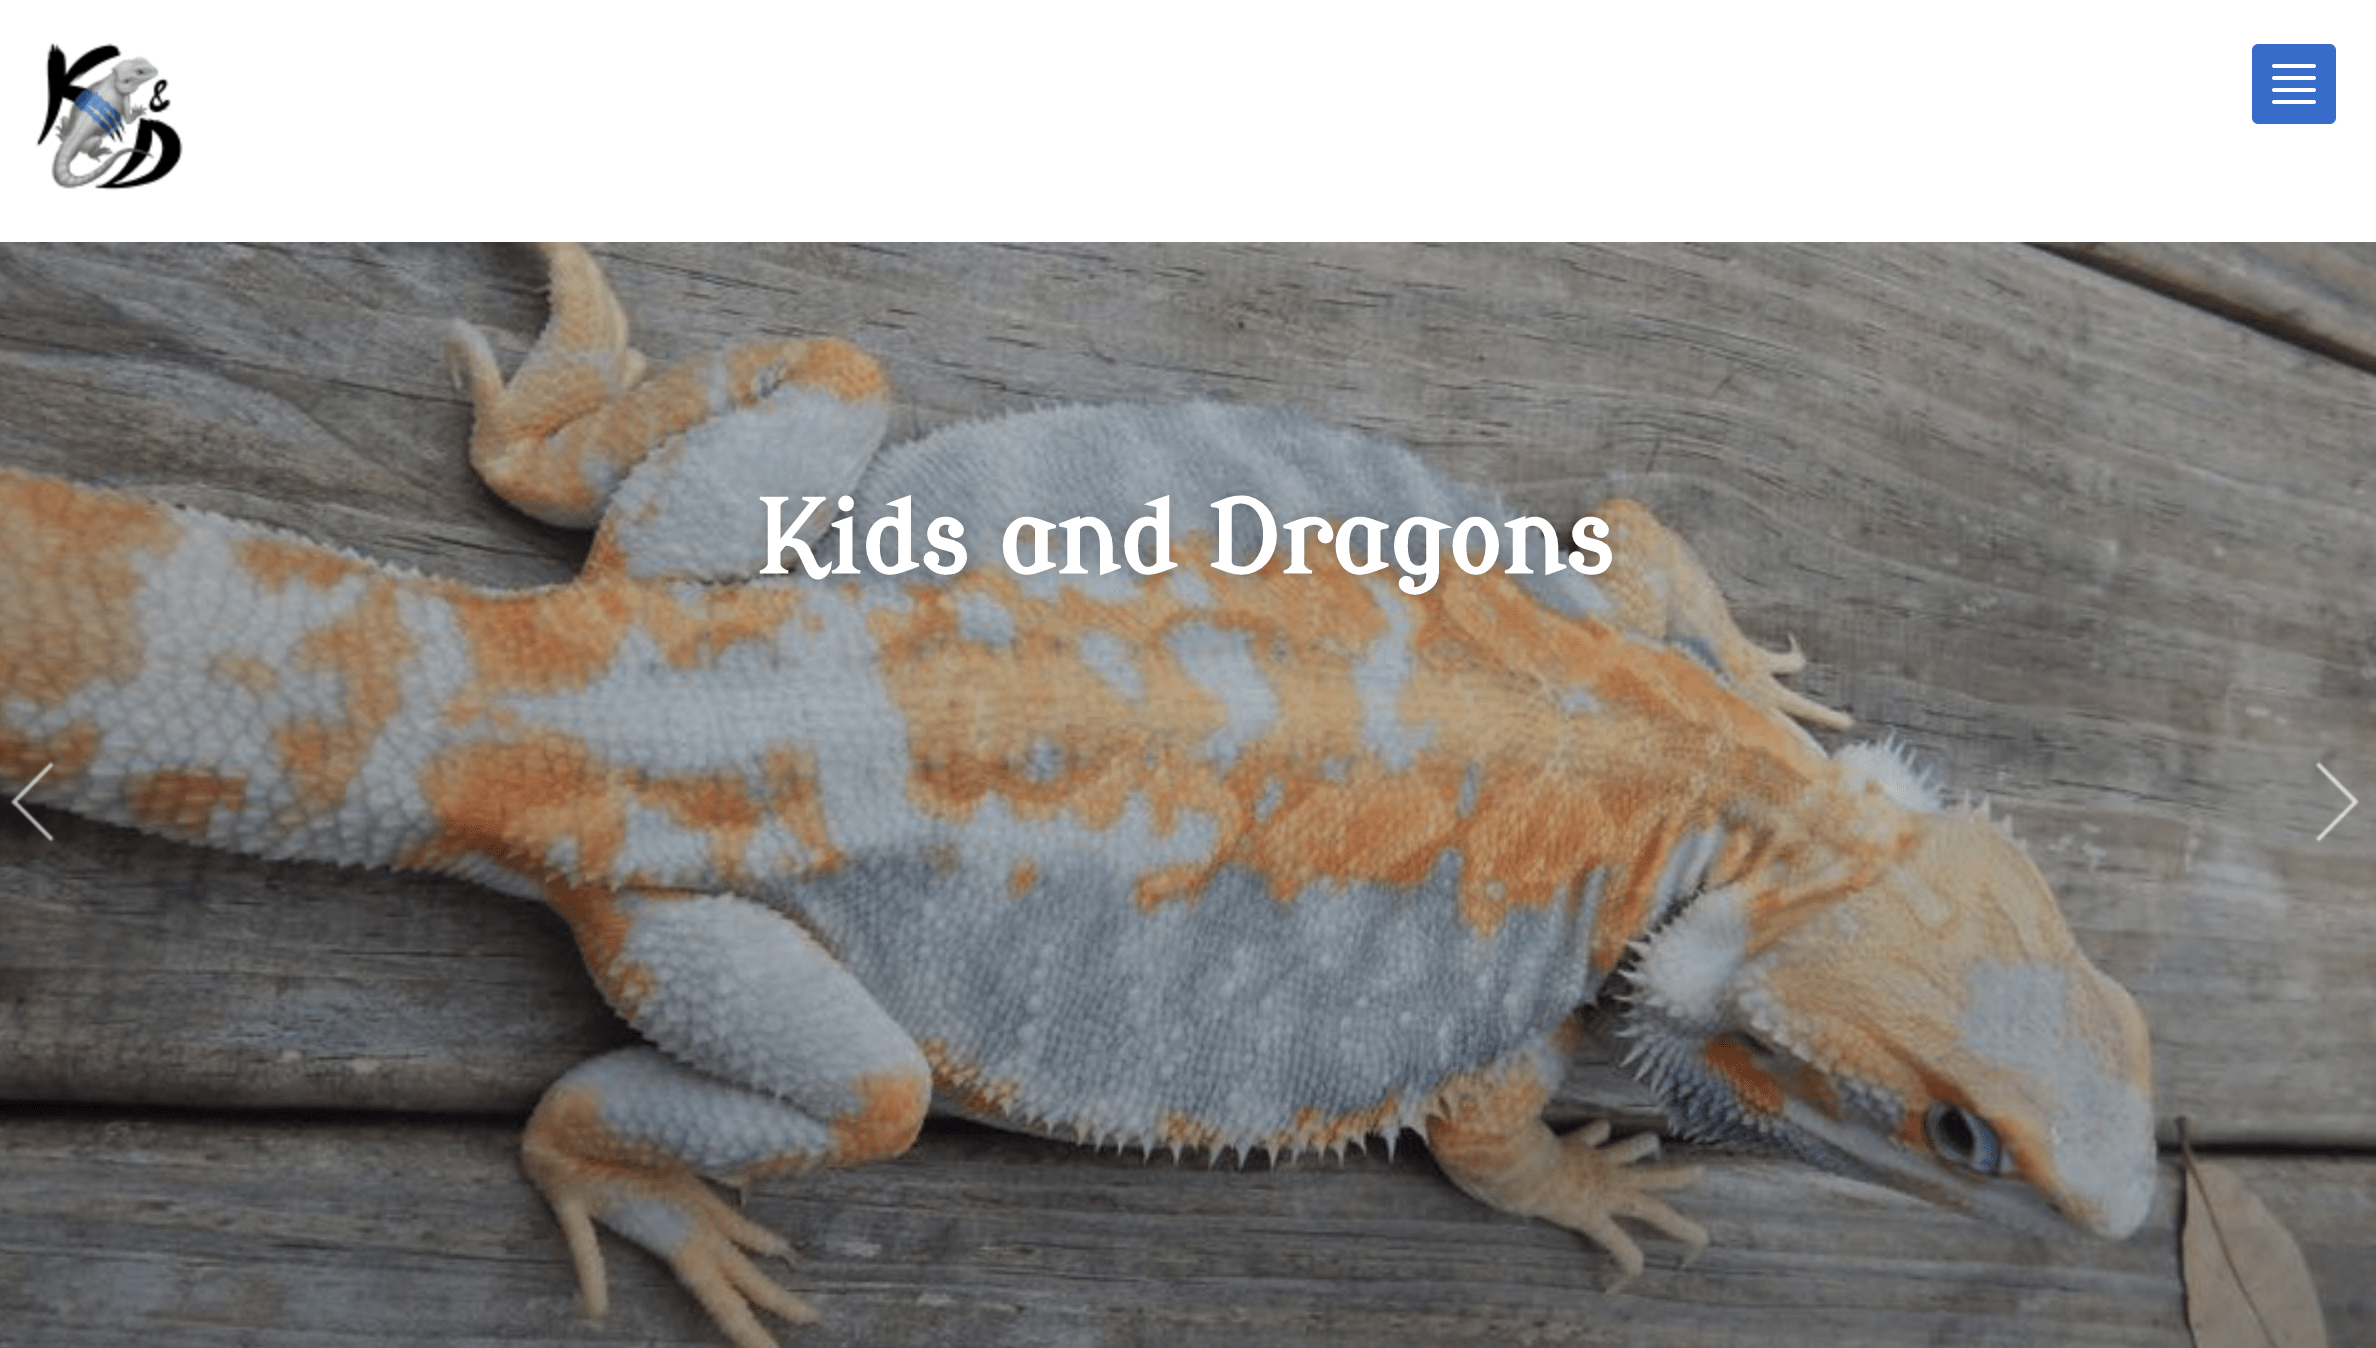 Kids and Dragons